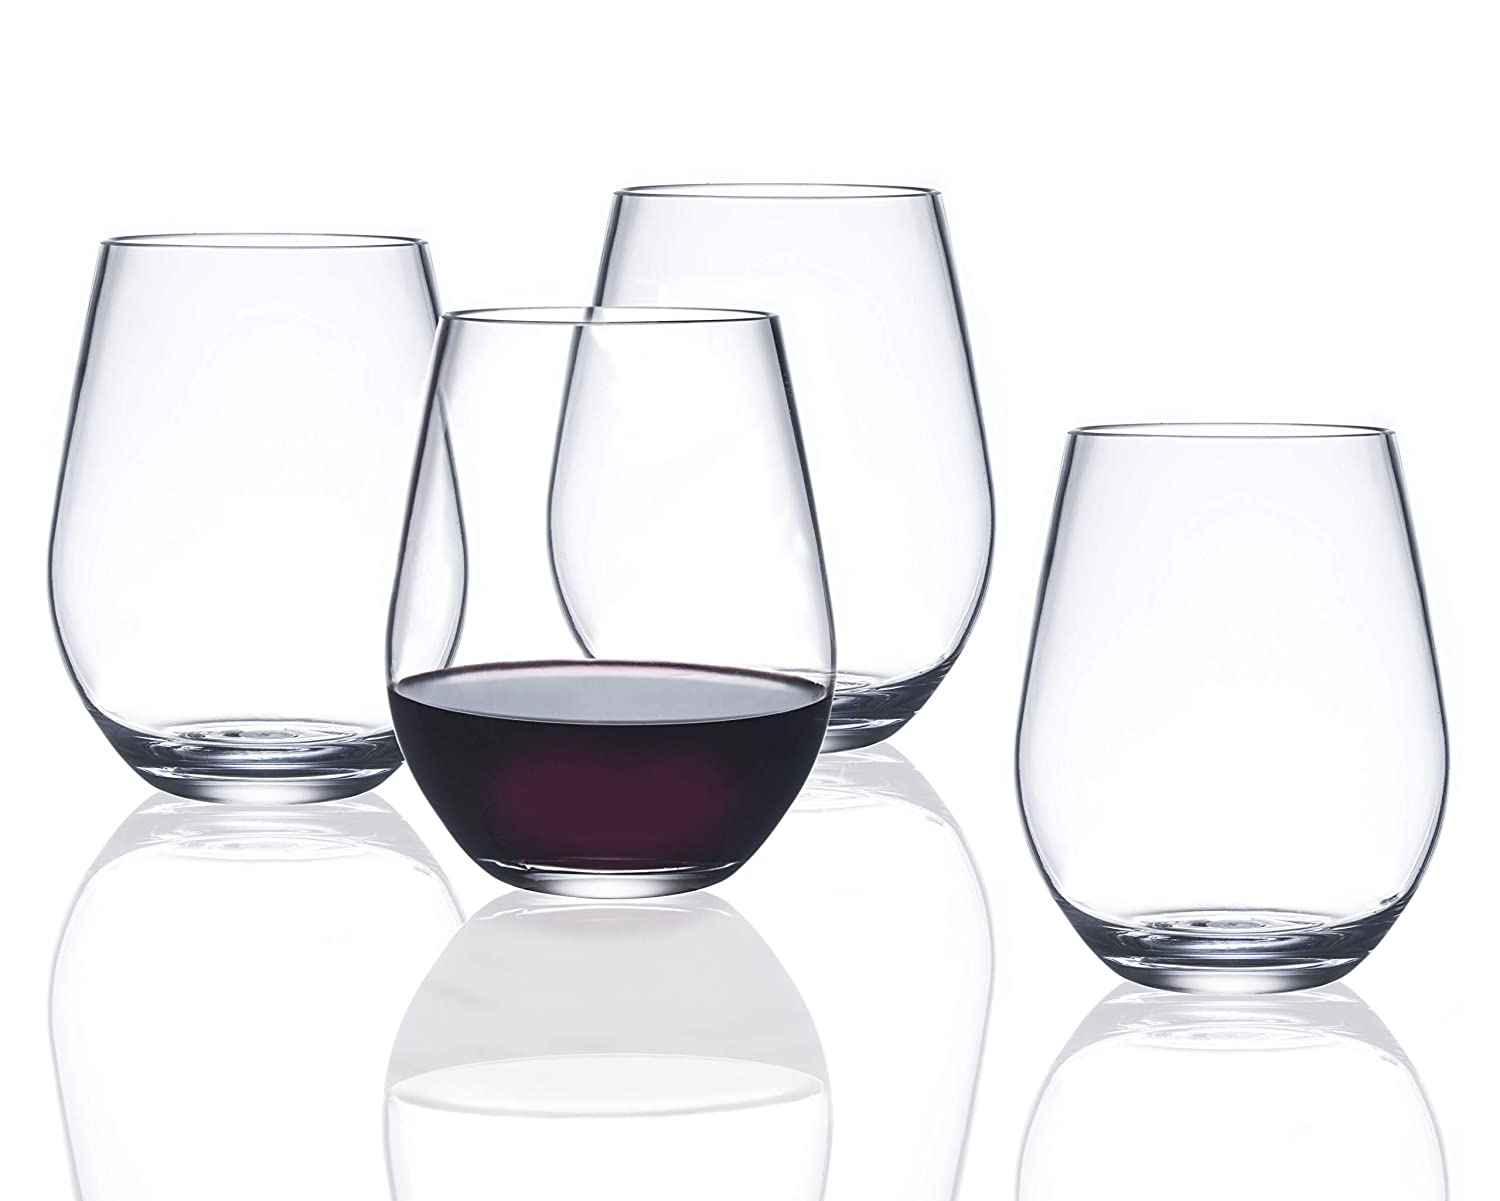 Drama Free Unbreakable Stemmed Wine Glass | FDCuvée 100% Tritan | Dishwasher safe - 22 oz | Set of 4 | Odorless | BPA Free | Not Glass Material | Indoor/Outdoor | Parties & Camping 01-002